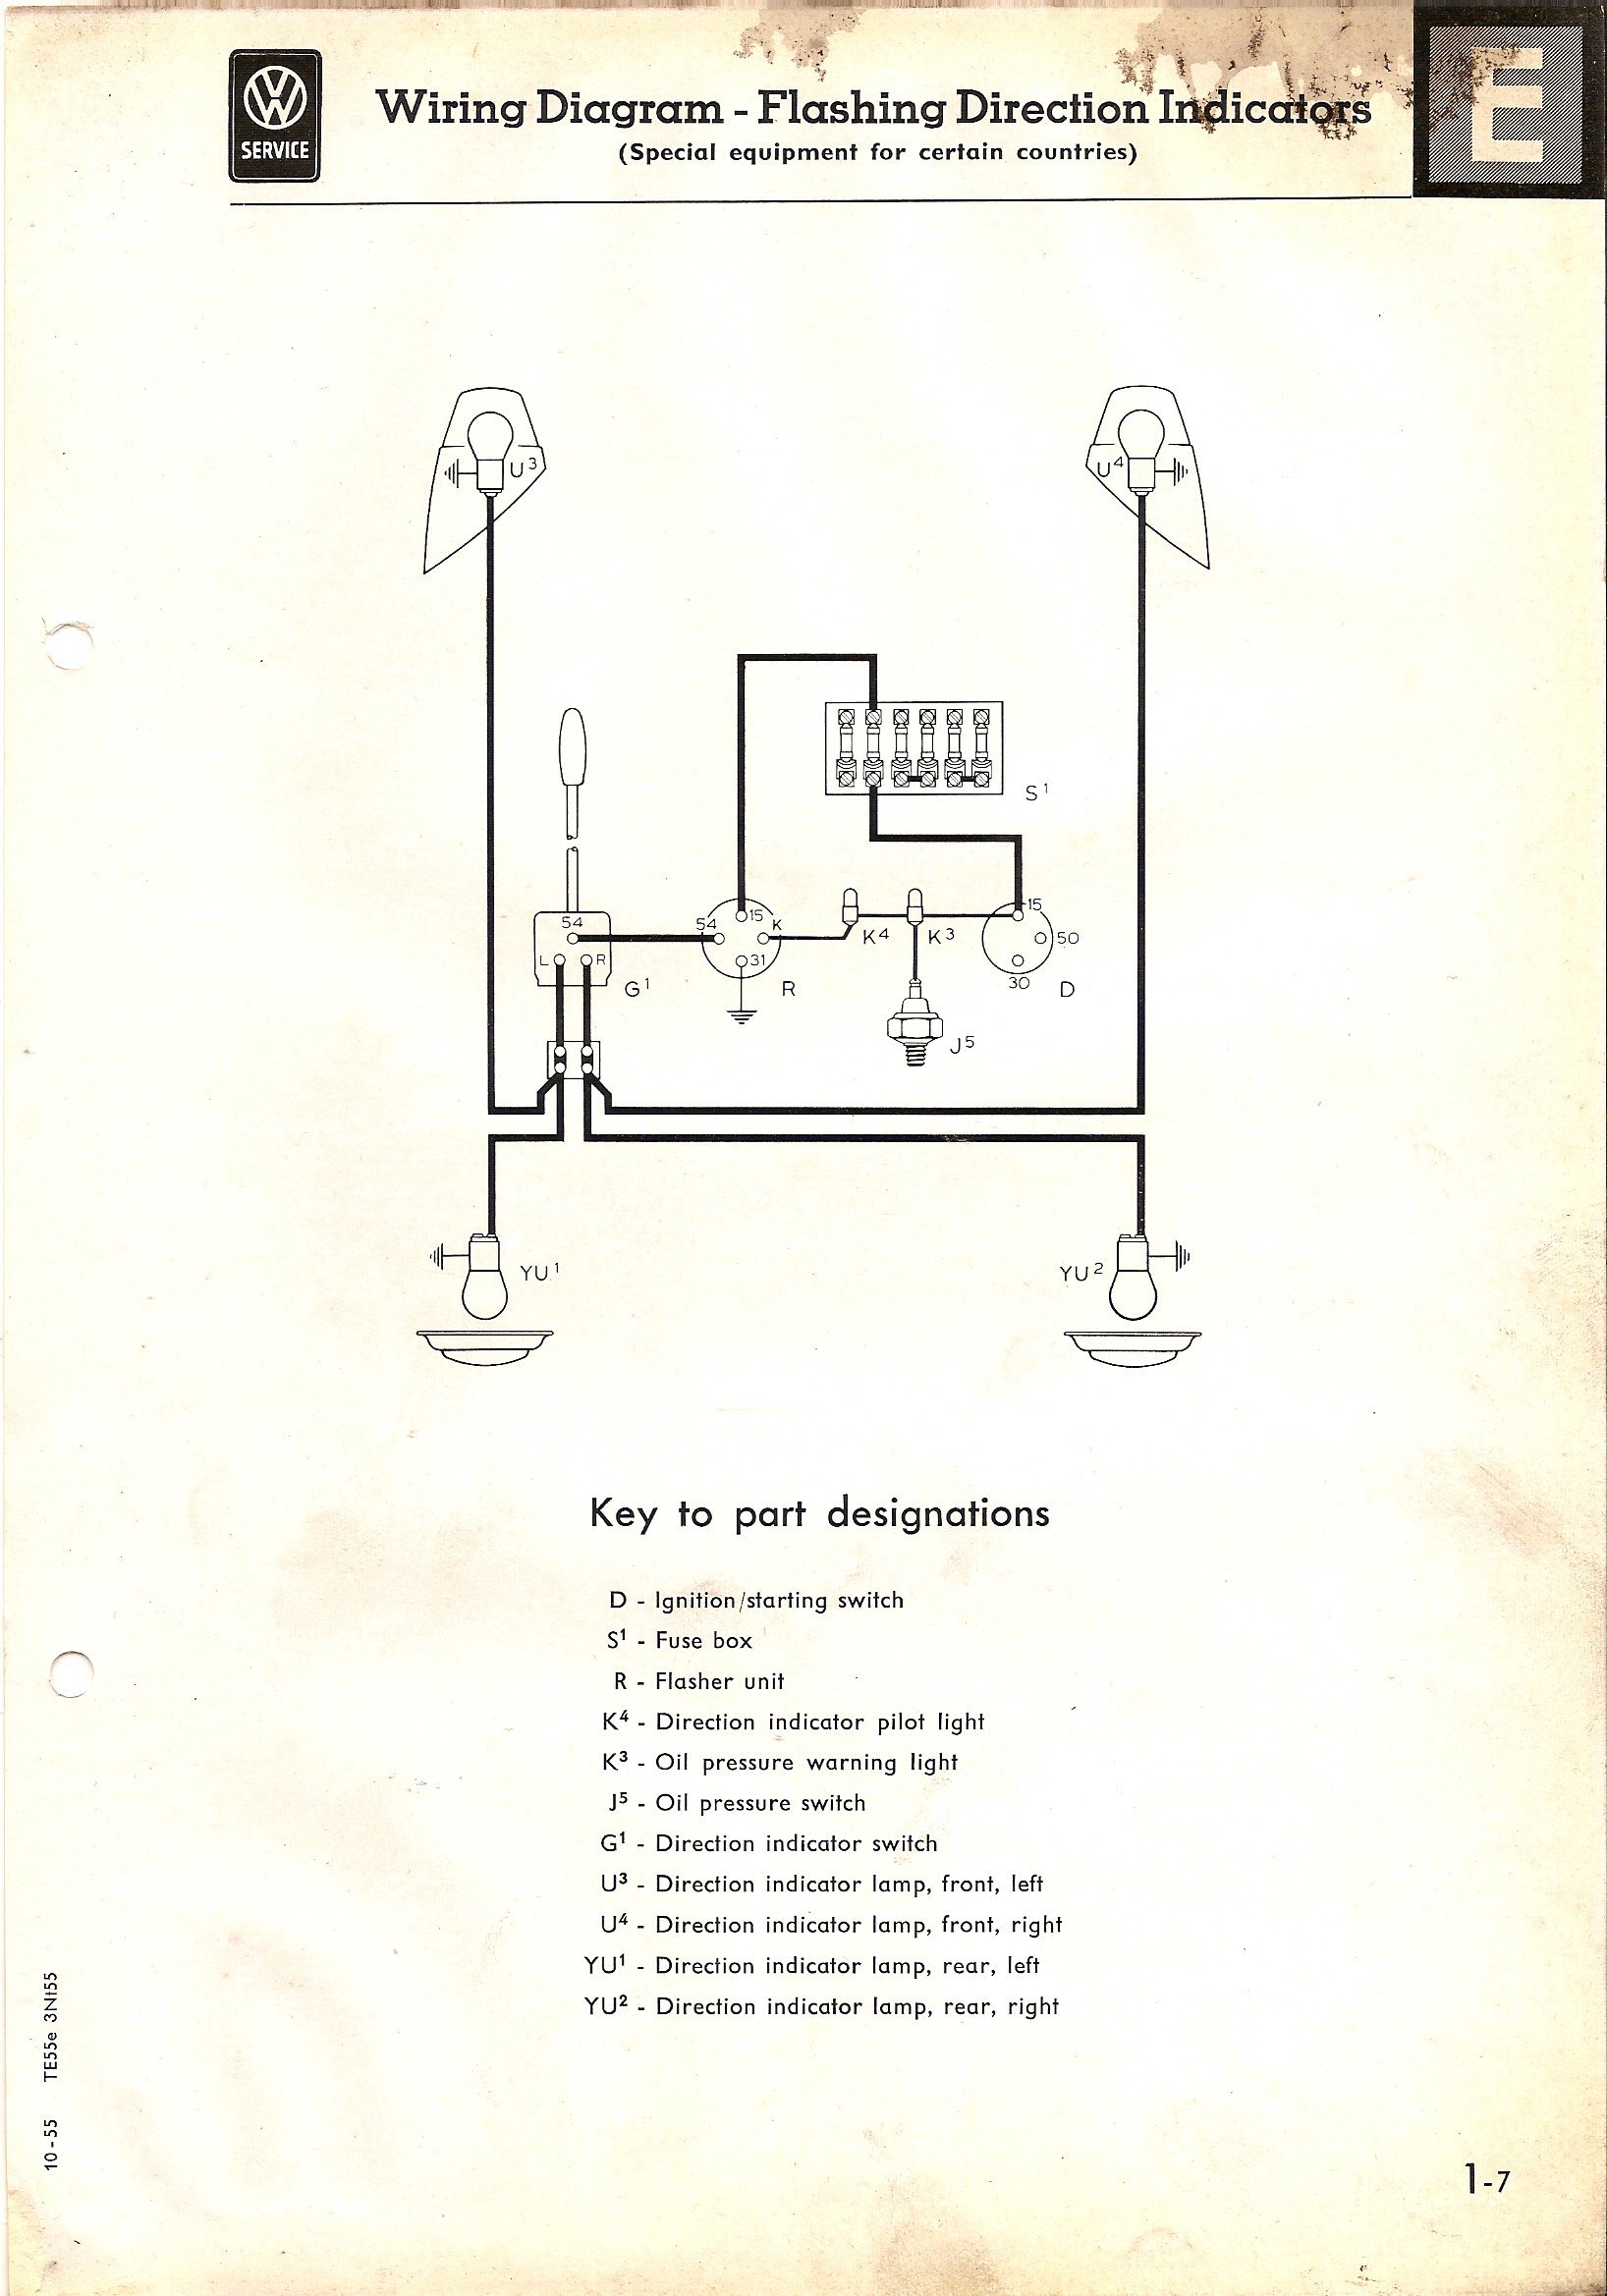 Type 2 Wiring Diagrams 1989 Suburban Rear Window Diagram